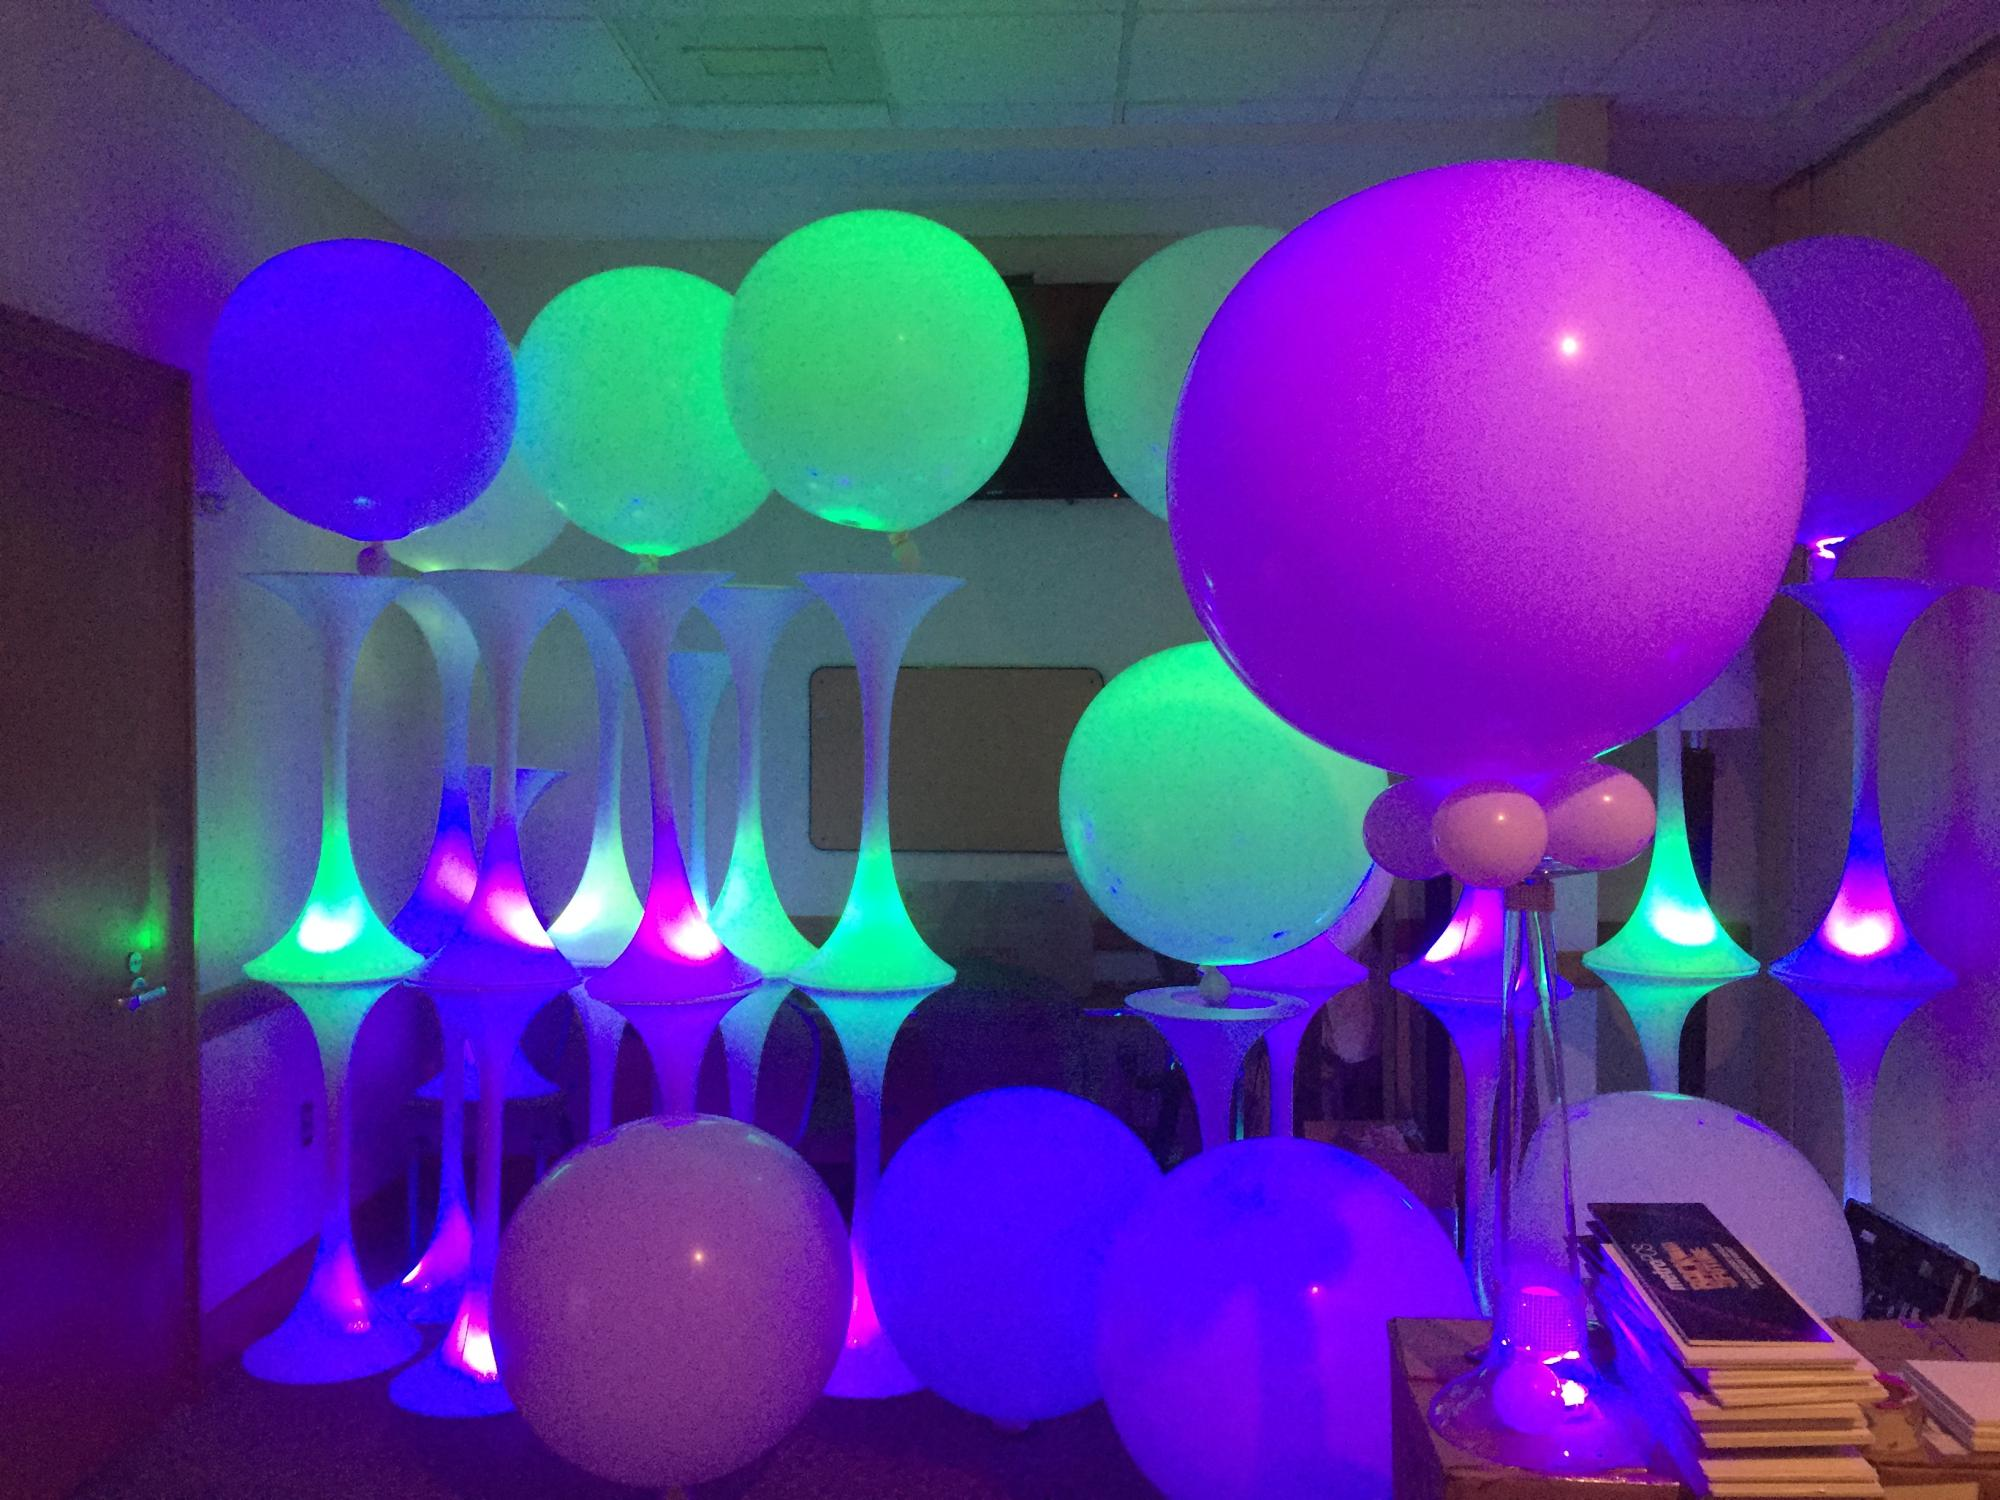 Led lights inside jumbo balloons with spandex tower